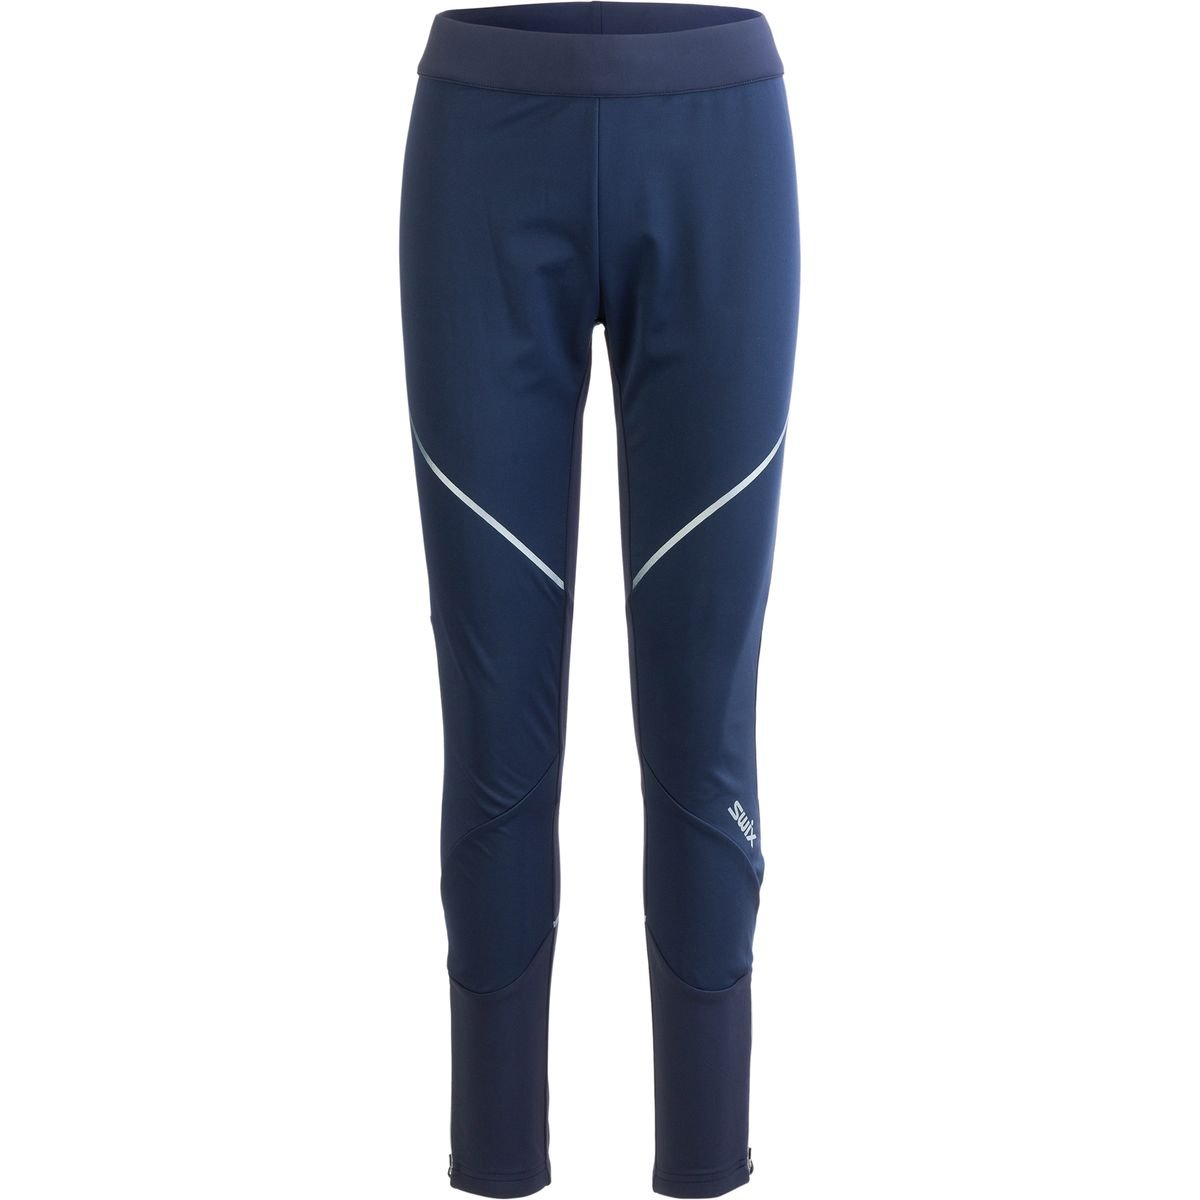 Swix Delda Light Softshell Pant - Women's New Navy, XS